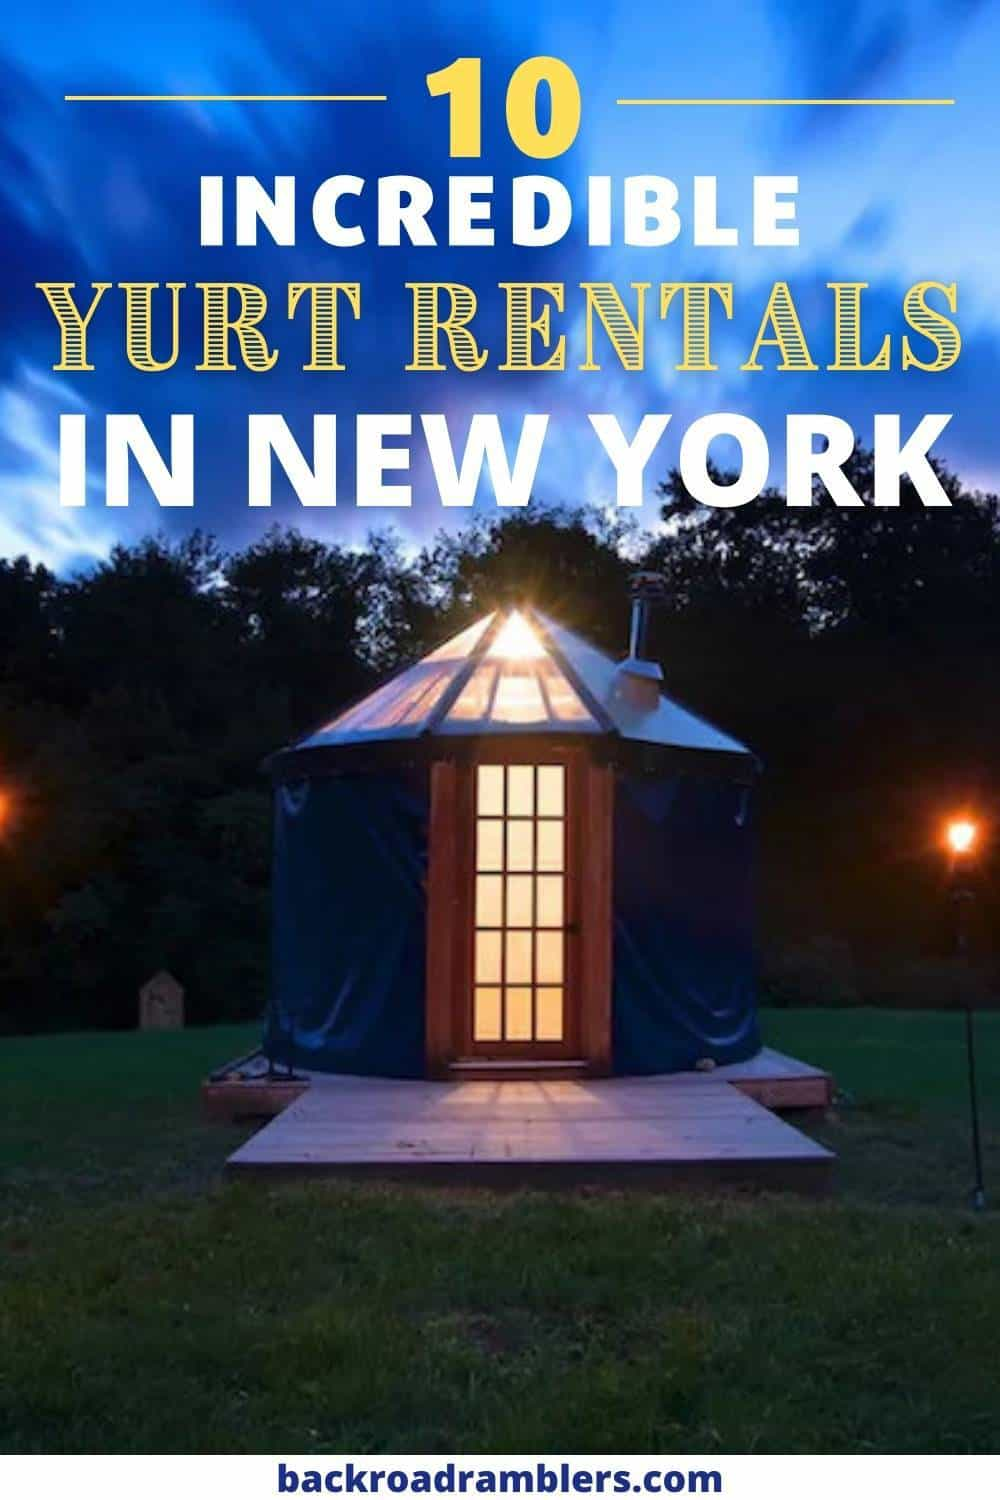 A yurt lit up at night in New York. Caption reads: Best New York yurts to rent